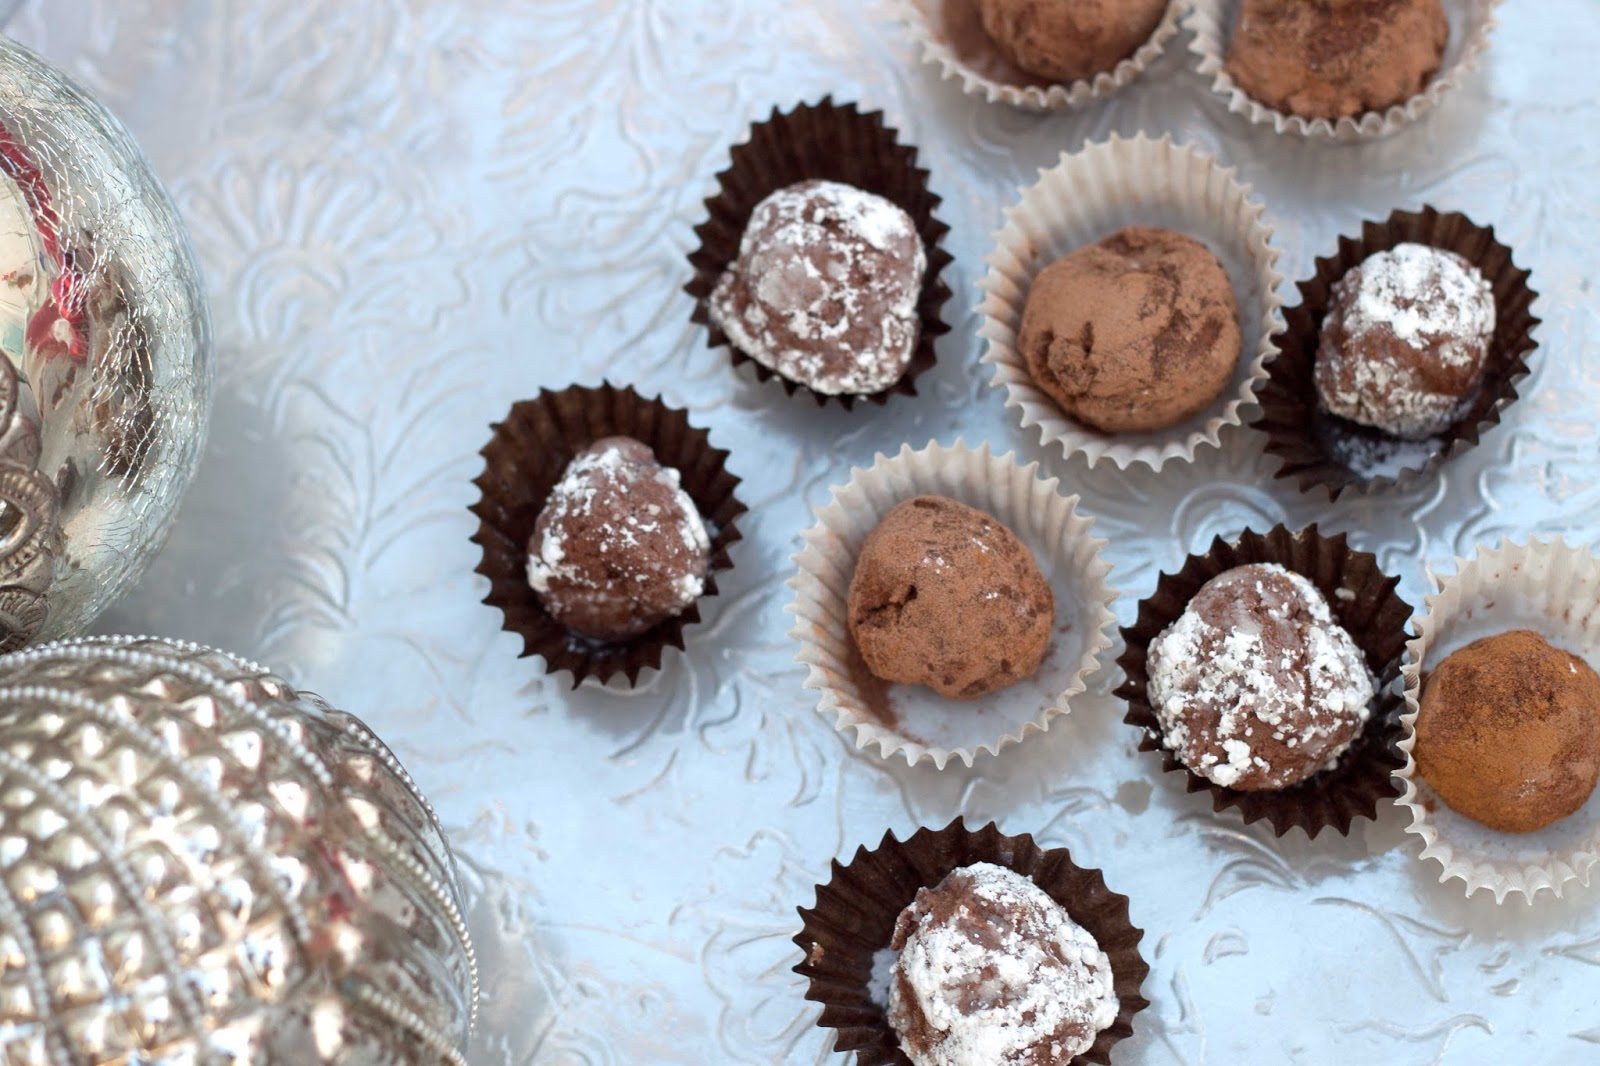 Britton+loves+baking+food+raw+chocolate+truffles+choc+chick+starter+pack+cacao+powder+cacao+butter+vegan+dairy+free+chrsitmas+present+treat+5